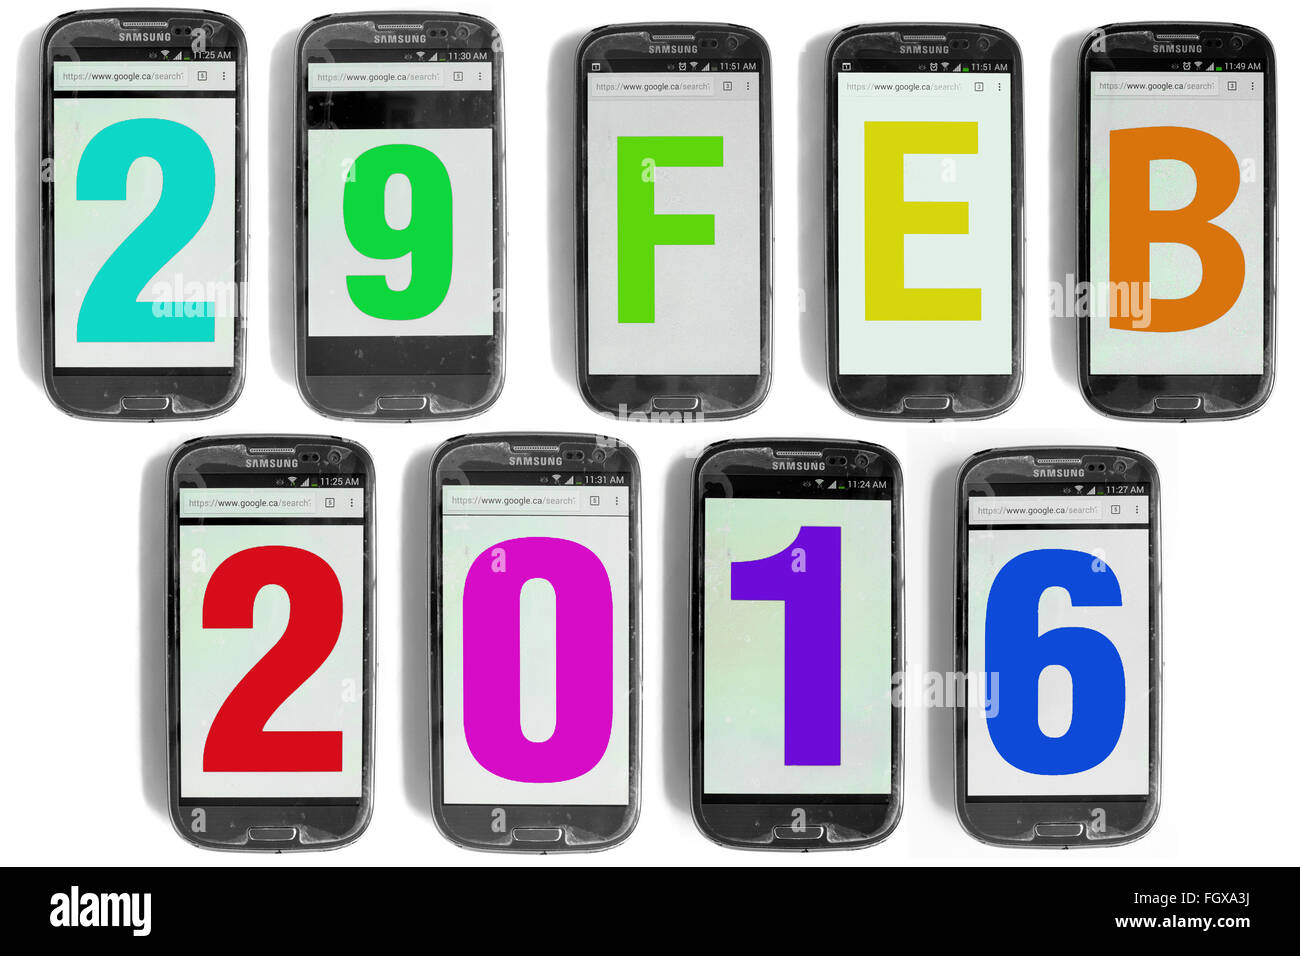 29 Feb written on the screens of smartphones photographed against a white background. - Stock Image